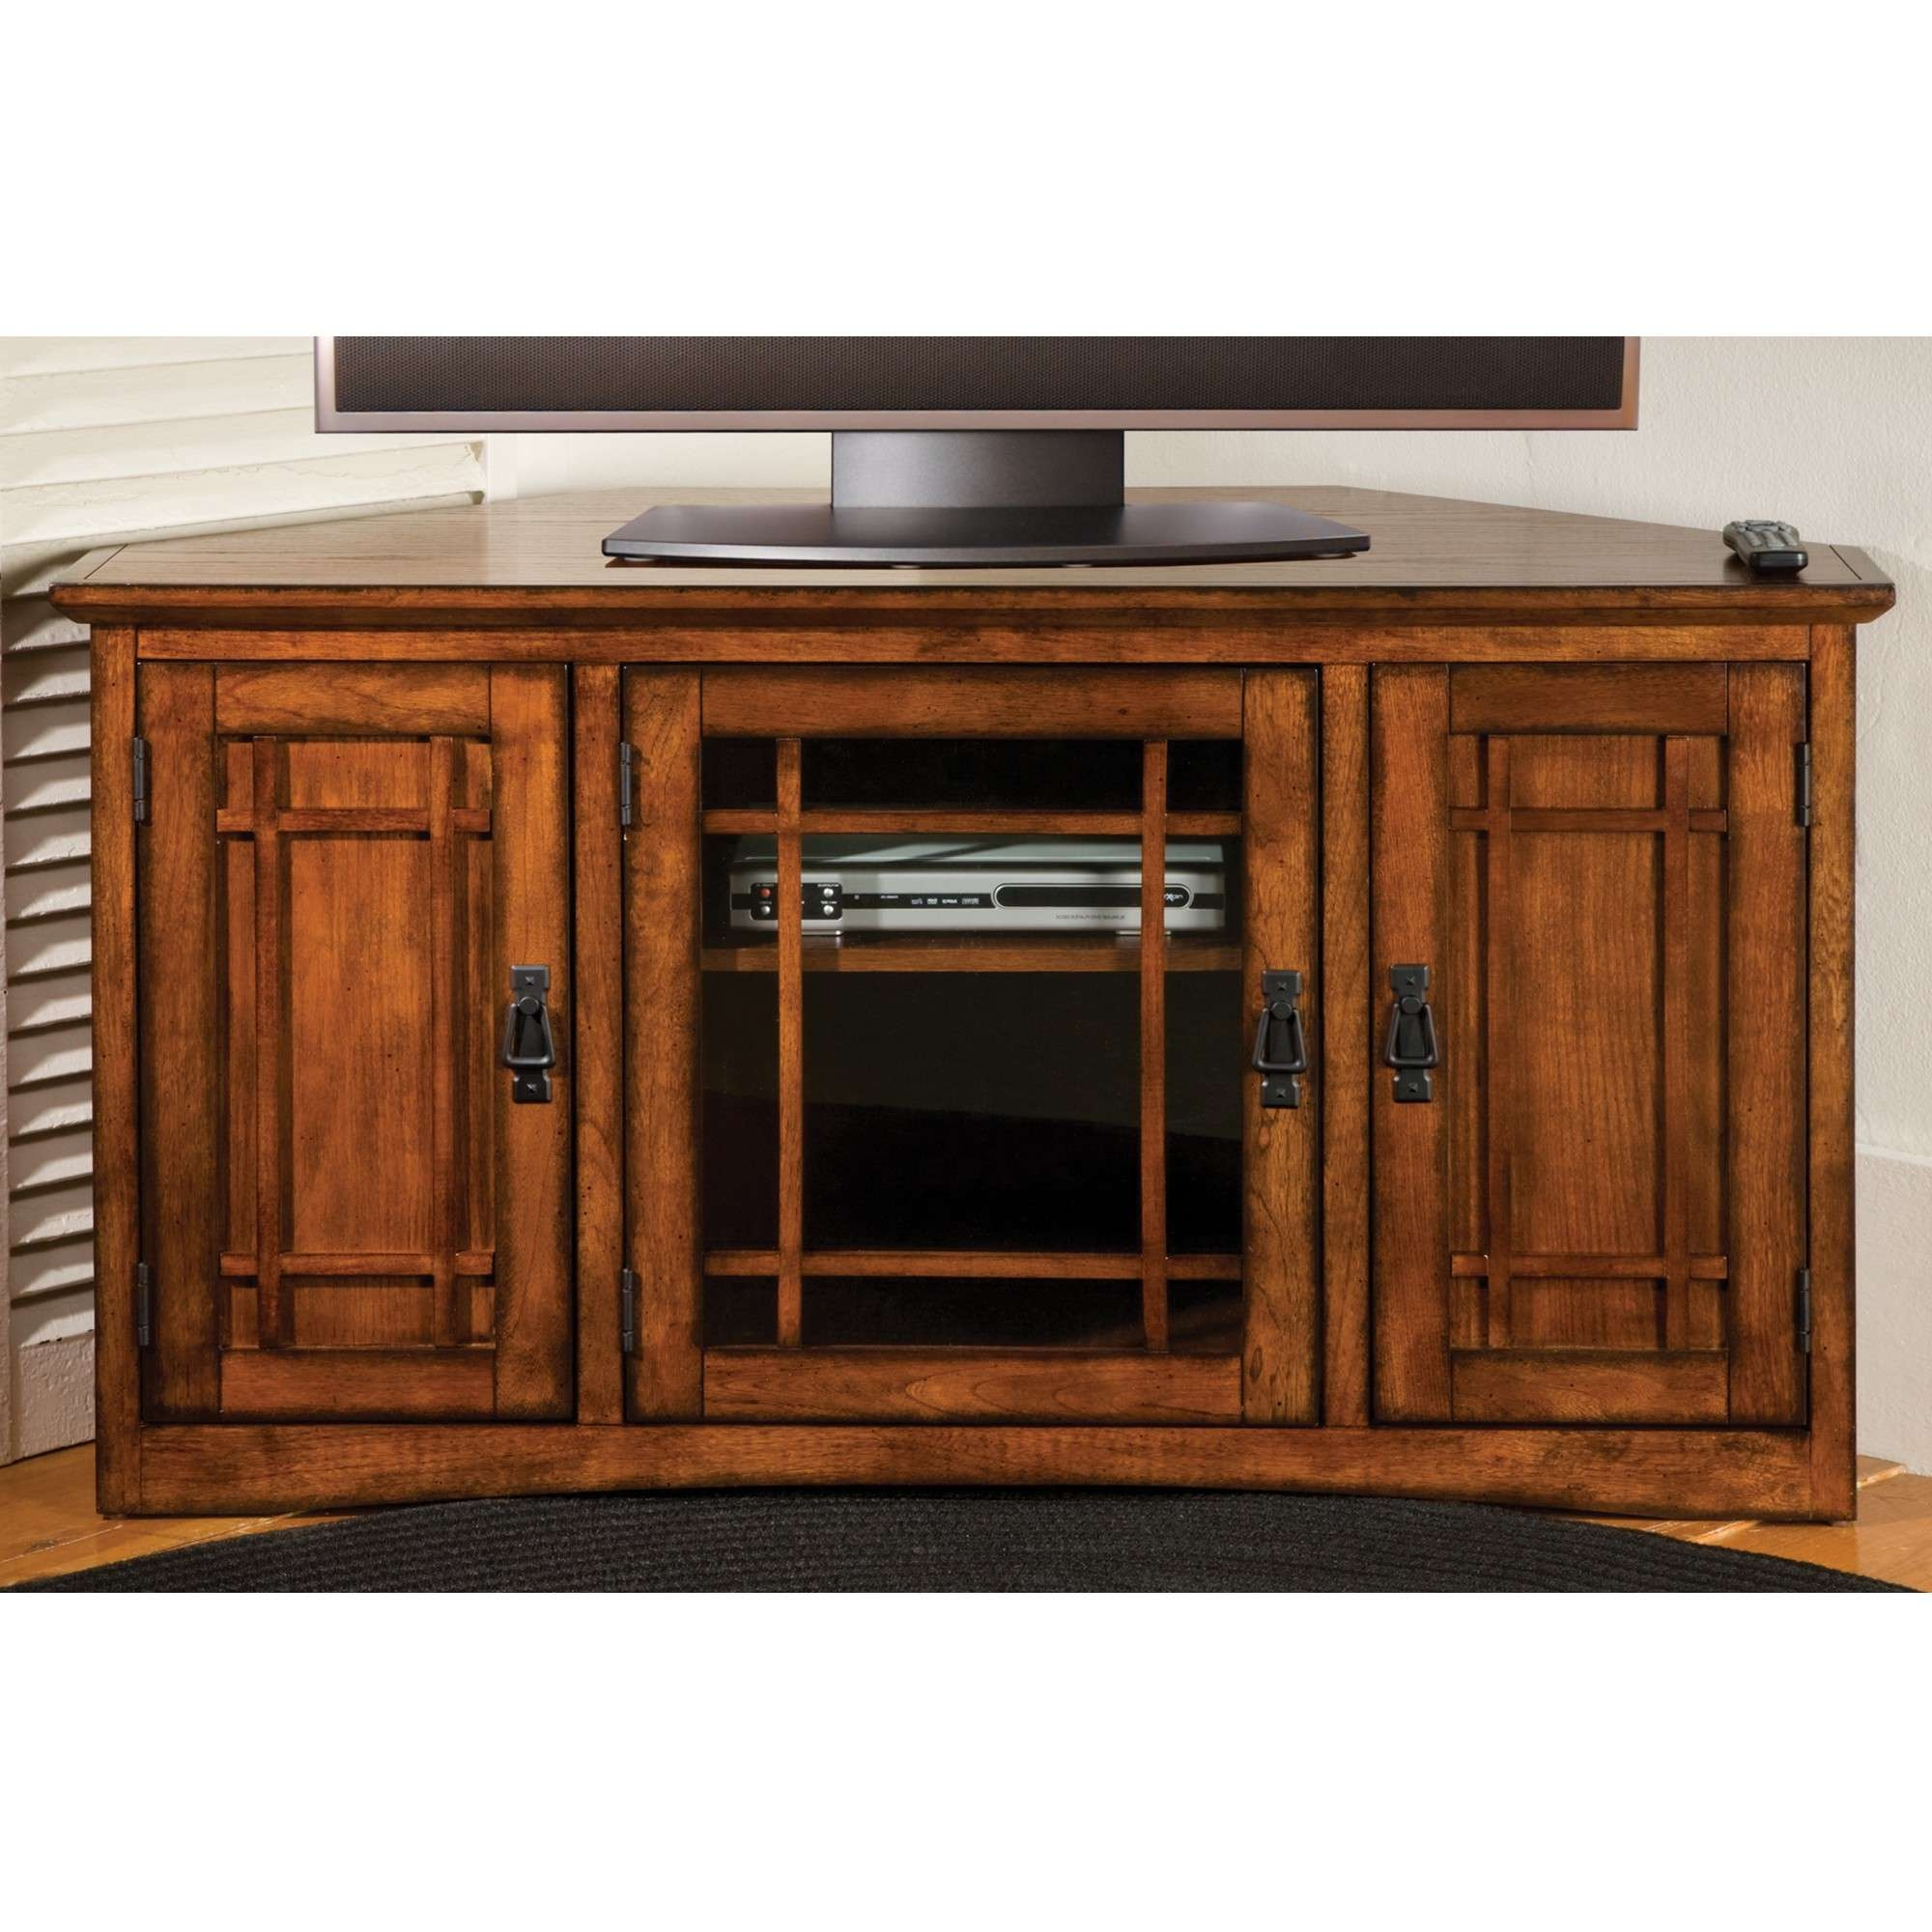 Mission Corner Tv Cabinet | Sturbridge Yankee Workshop Pertaining To Corner Tv Cabinets With Glass Doors (View 5 of 20)